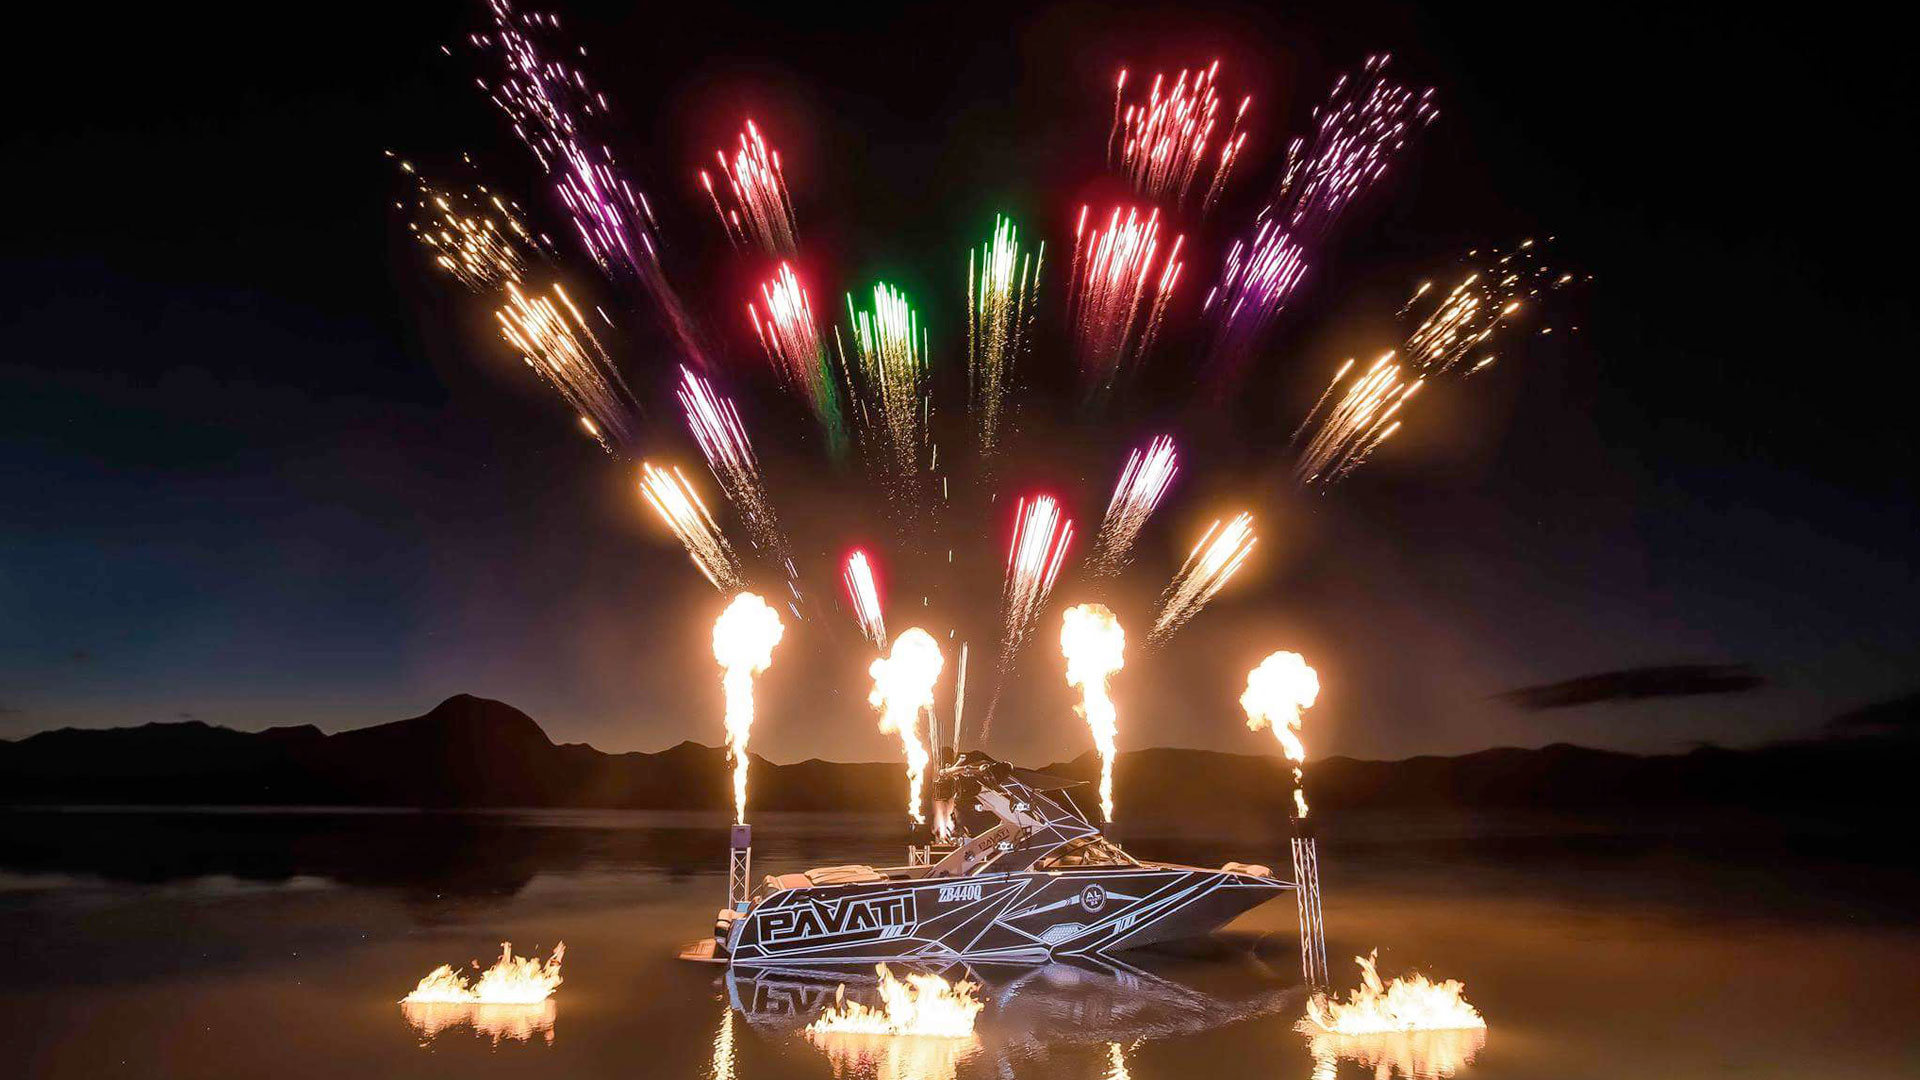 all-fired-up-fireworks-stage-fx-moogerah-dam-pavati-boat